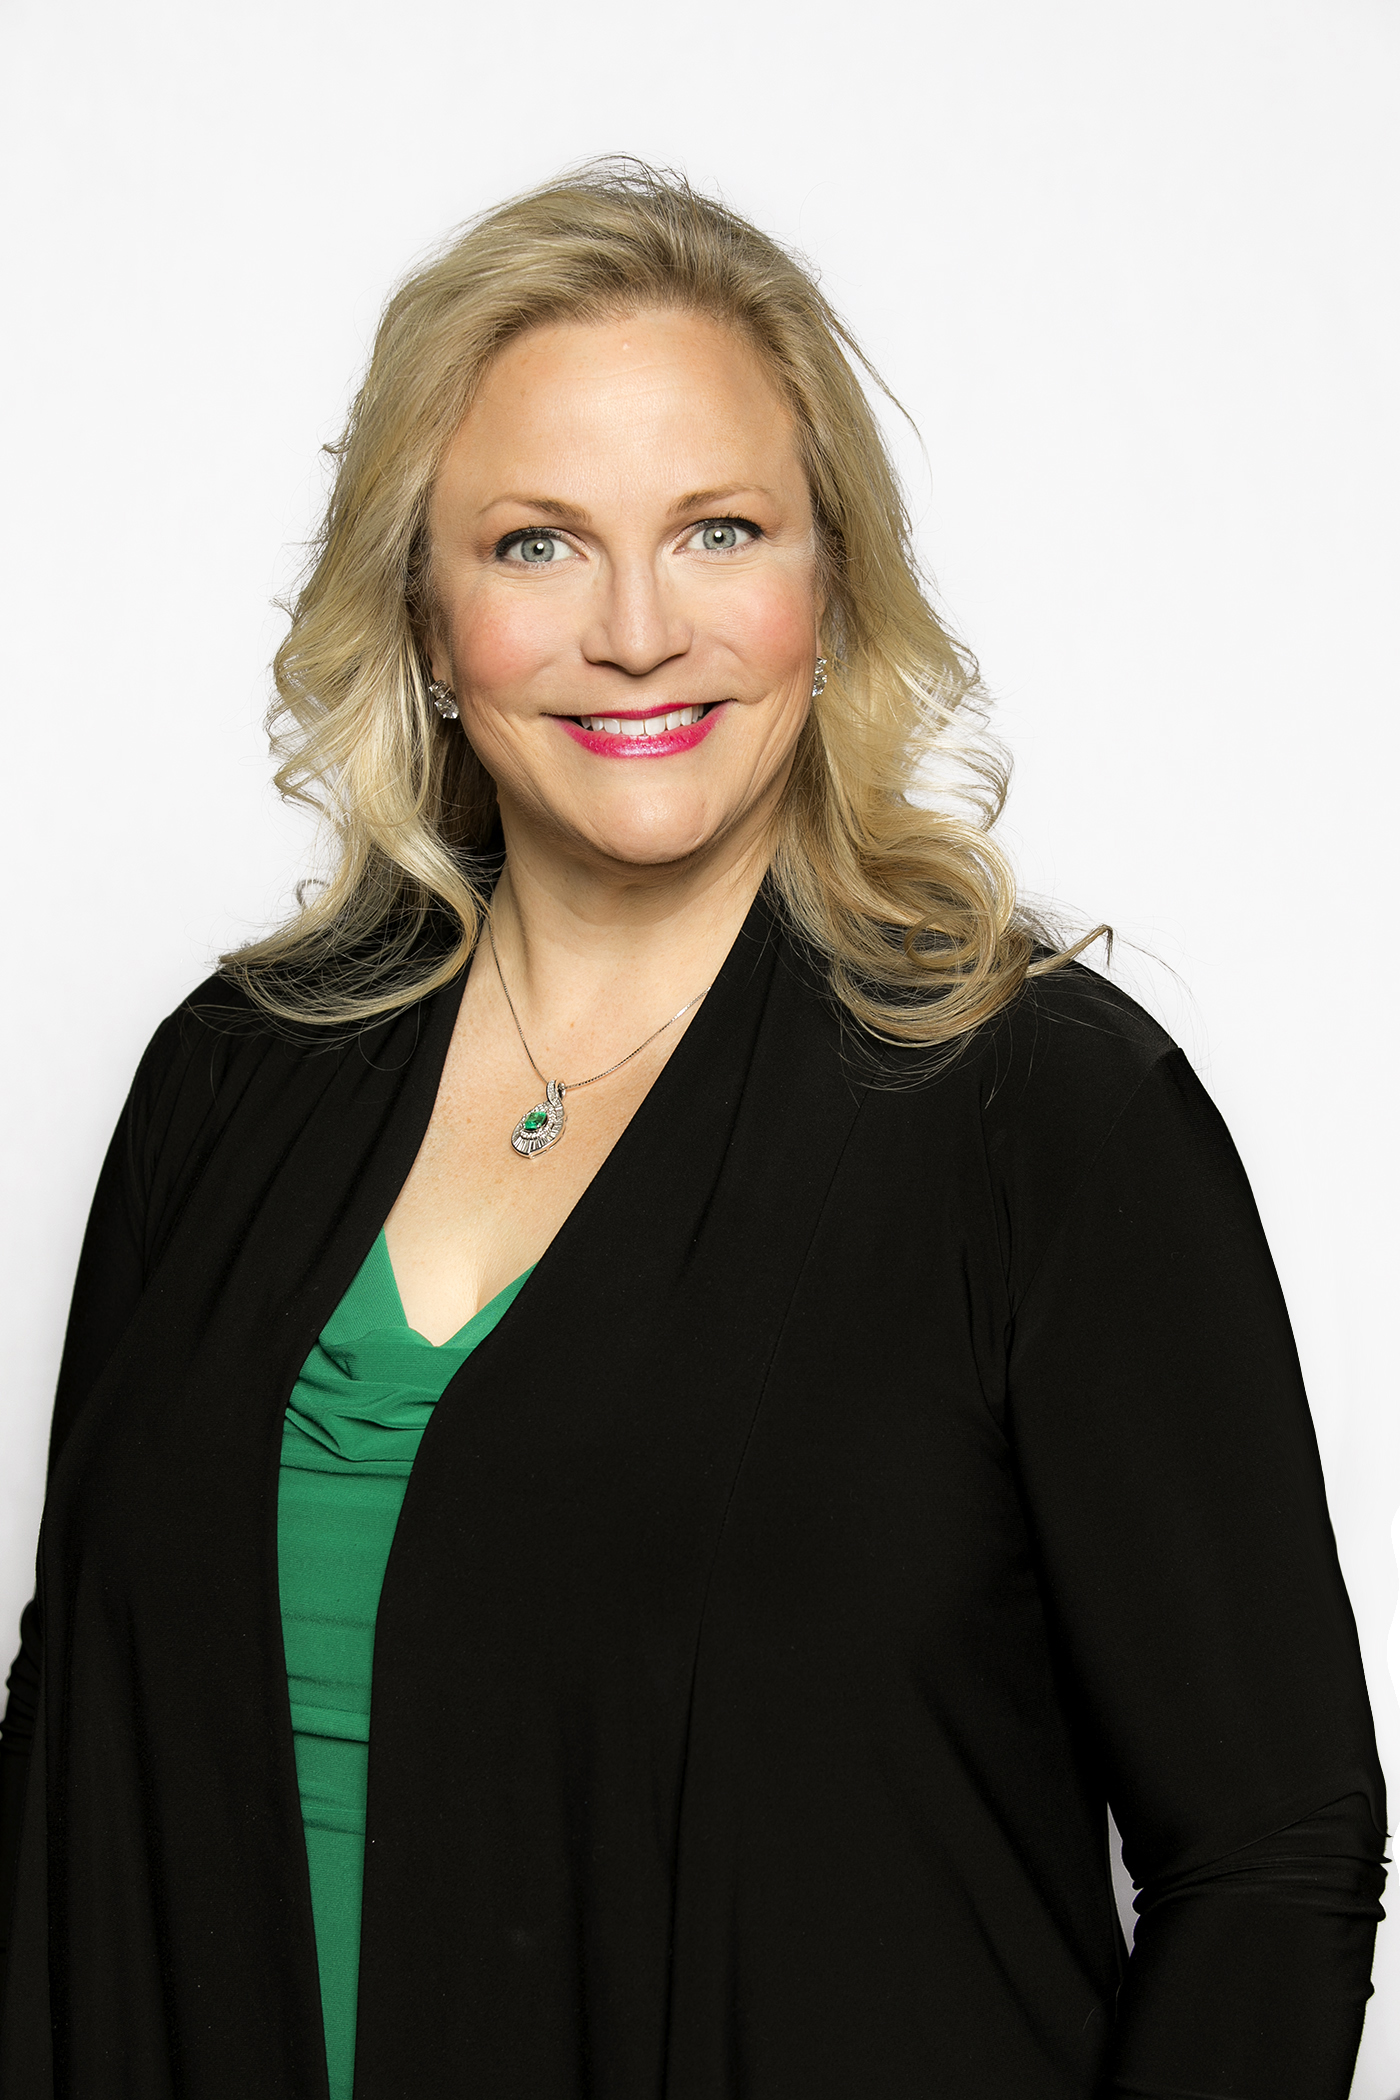 LYNNELLE EDIGER-KORDZAIA, Founder and Director